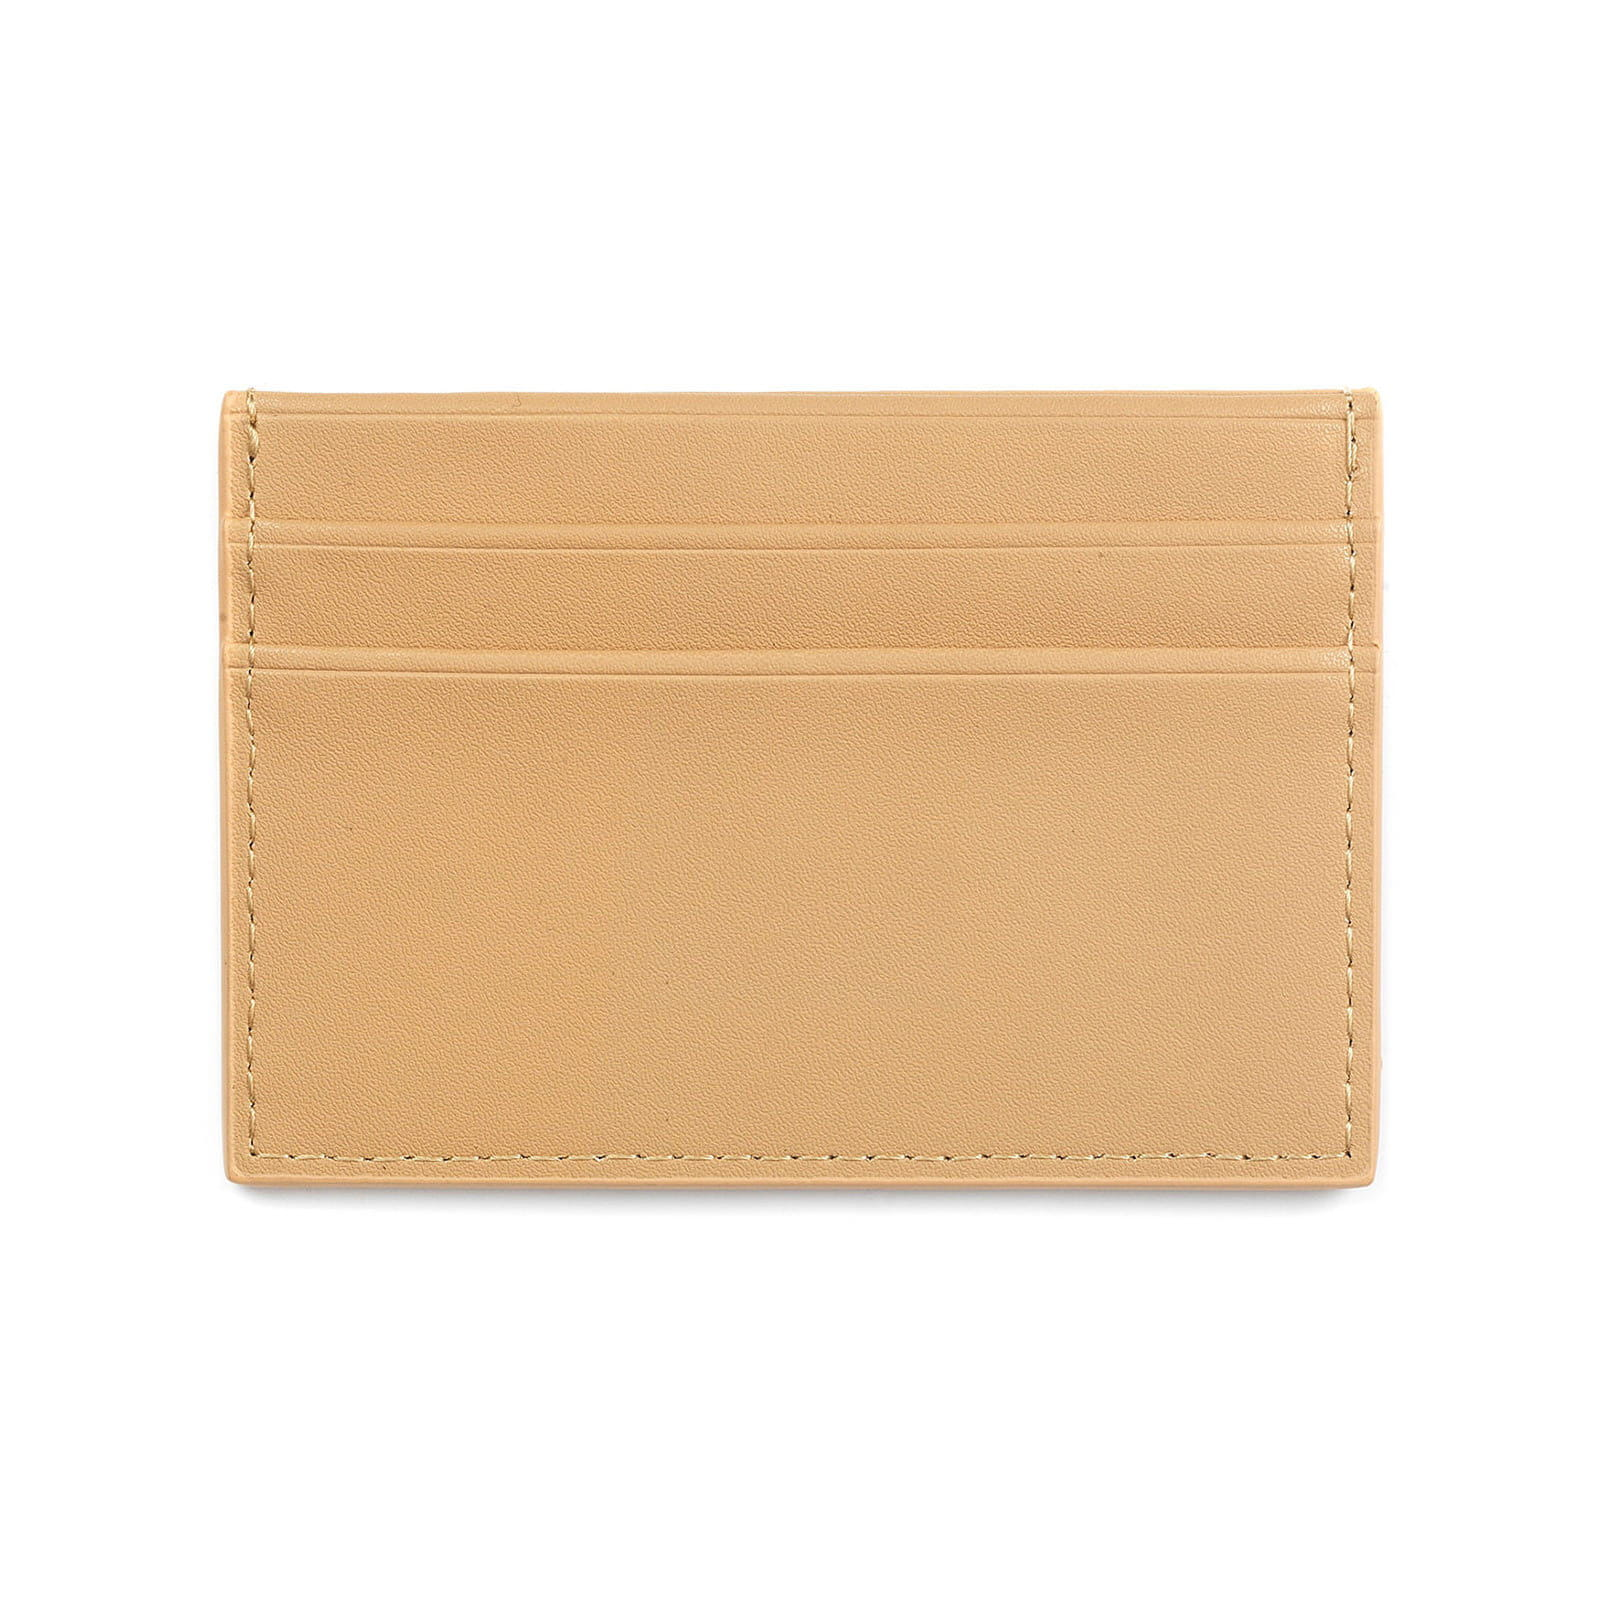 Blank Personalised Caramel Smooth Leather Card Holder